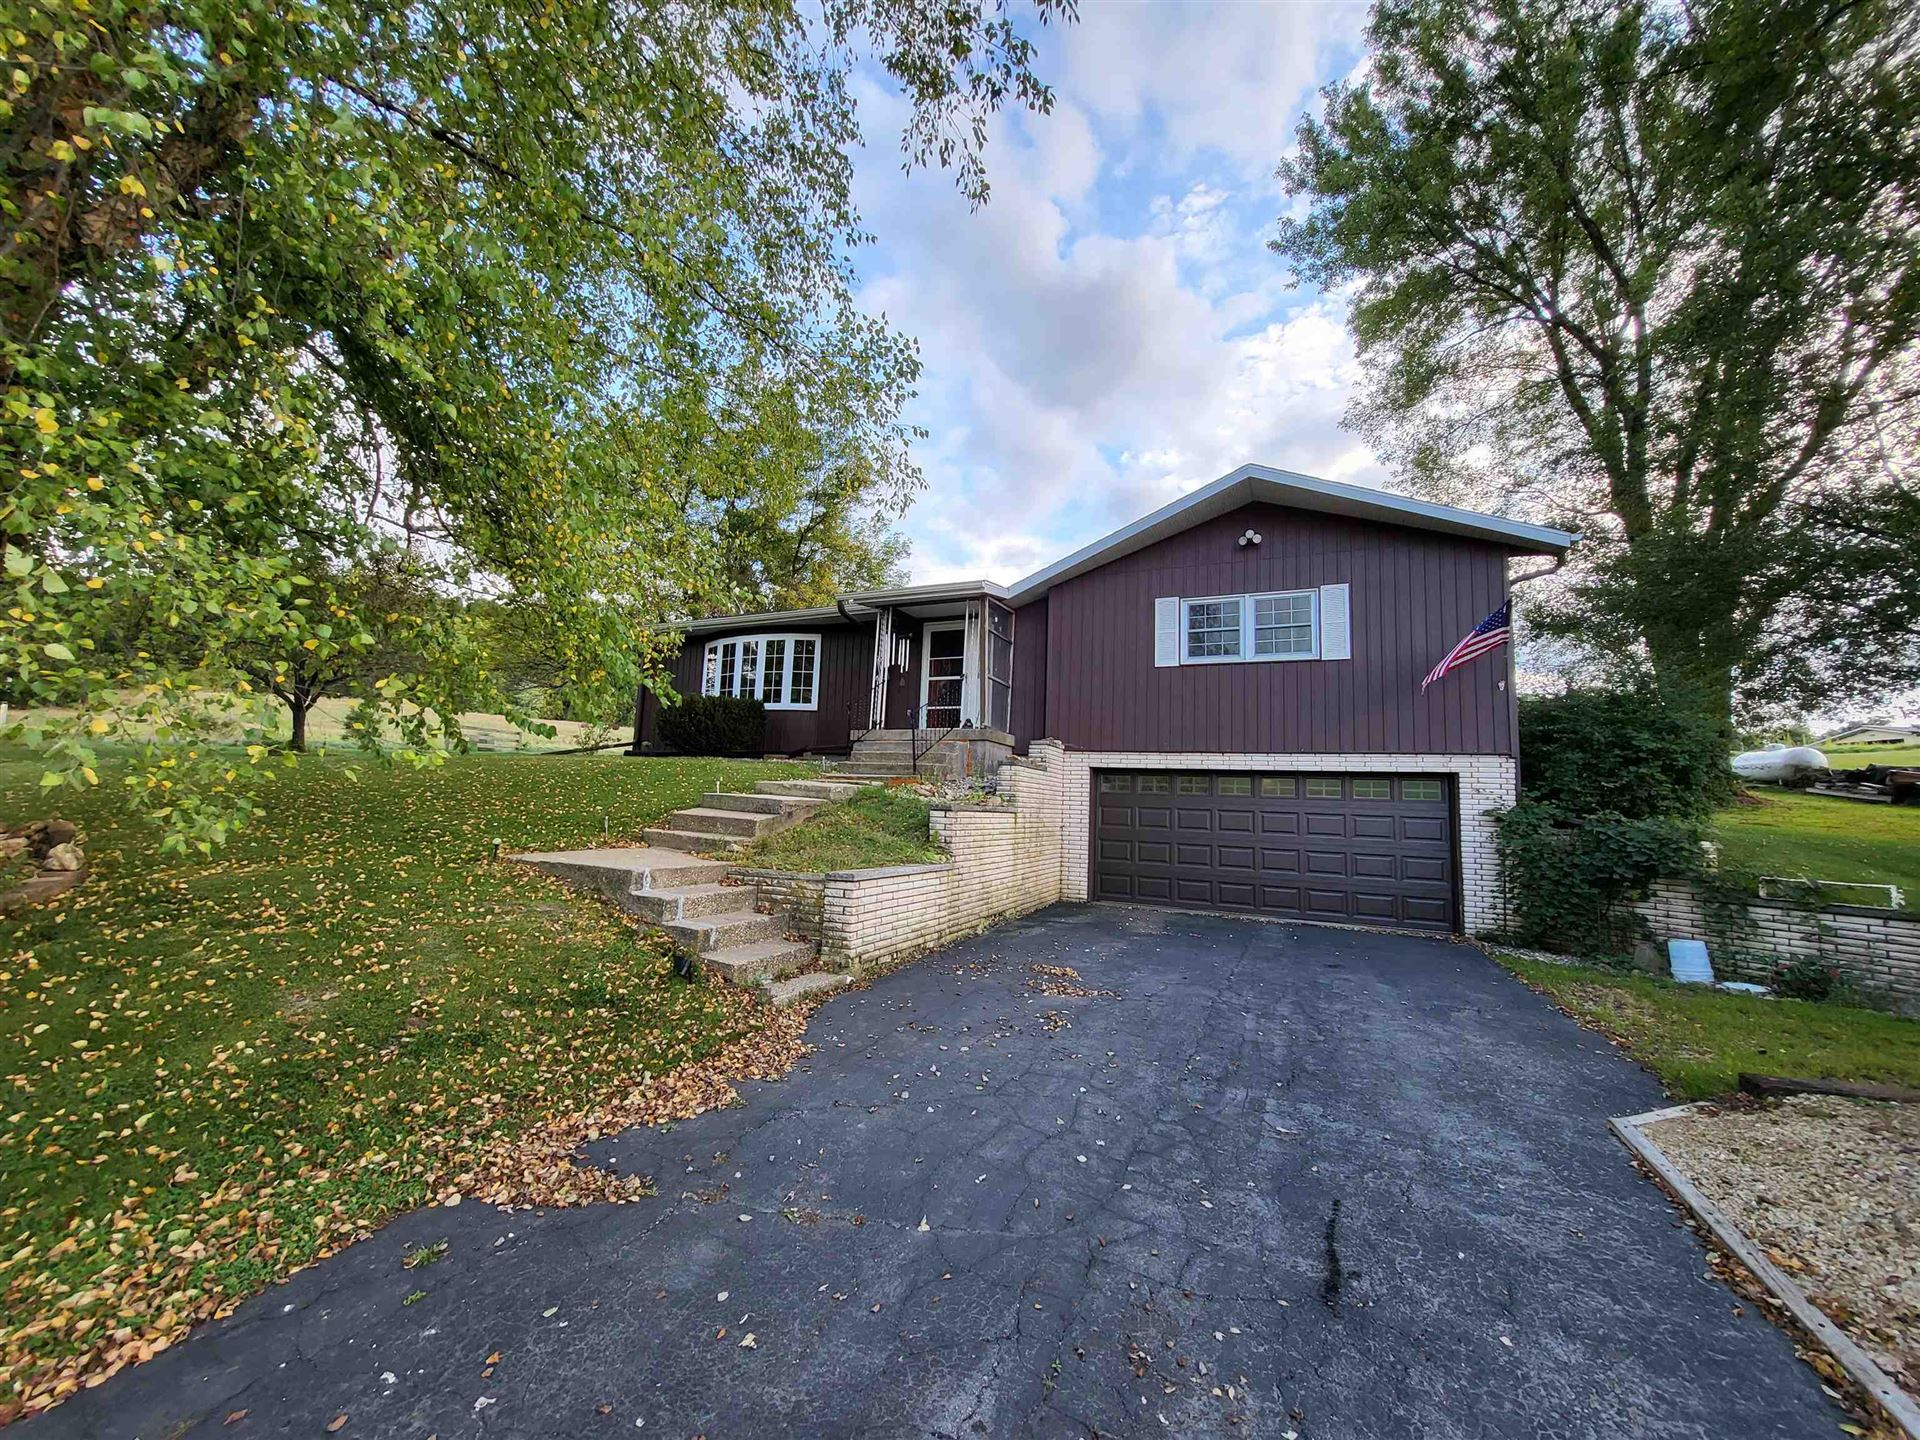 24959 Morris Valley Rd, Richland Center, WI 53581 - #: 1919862